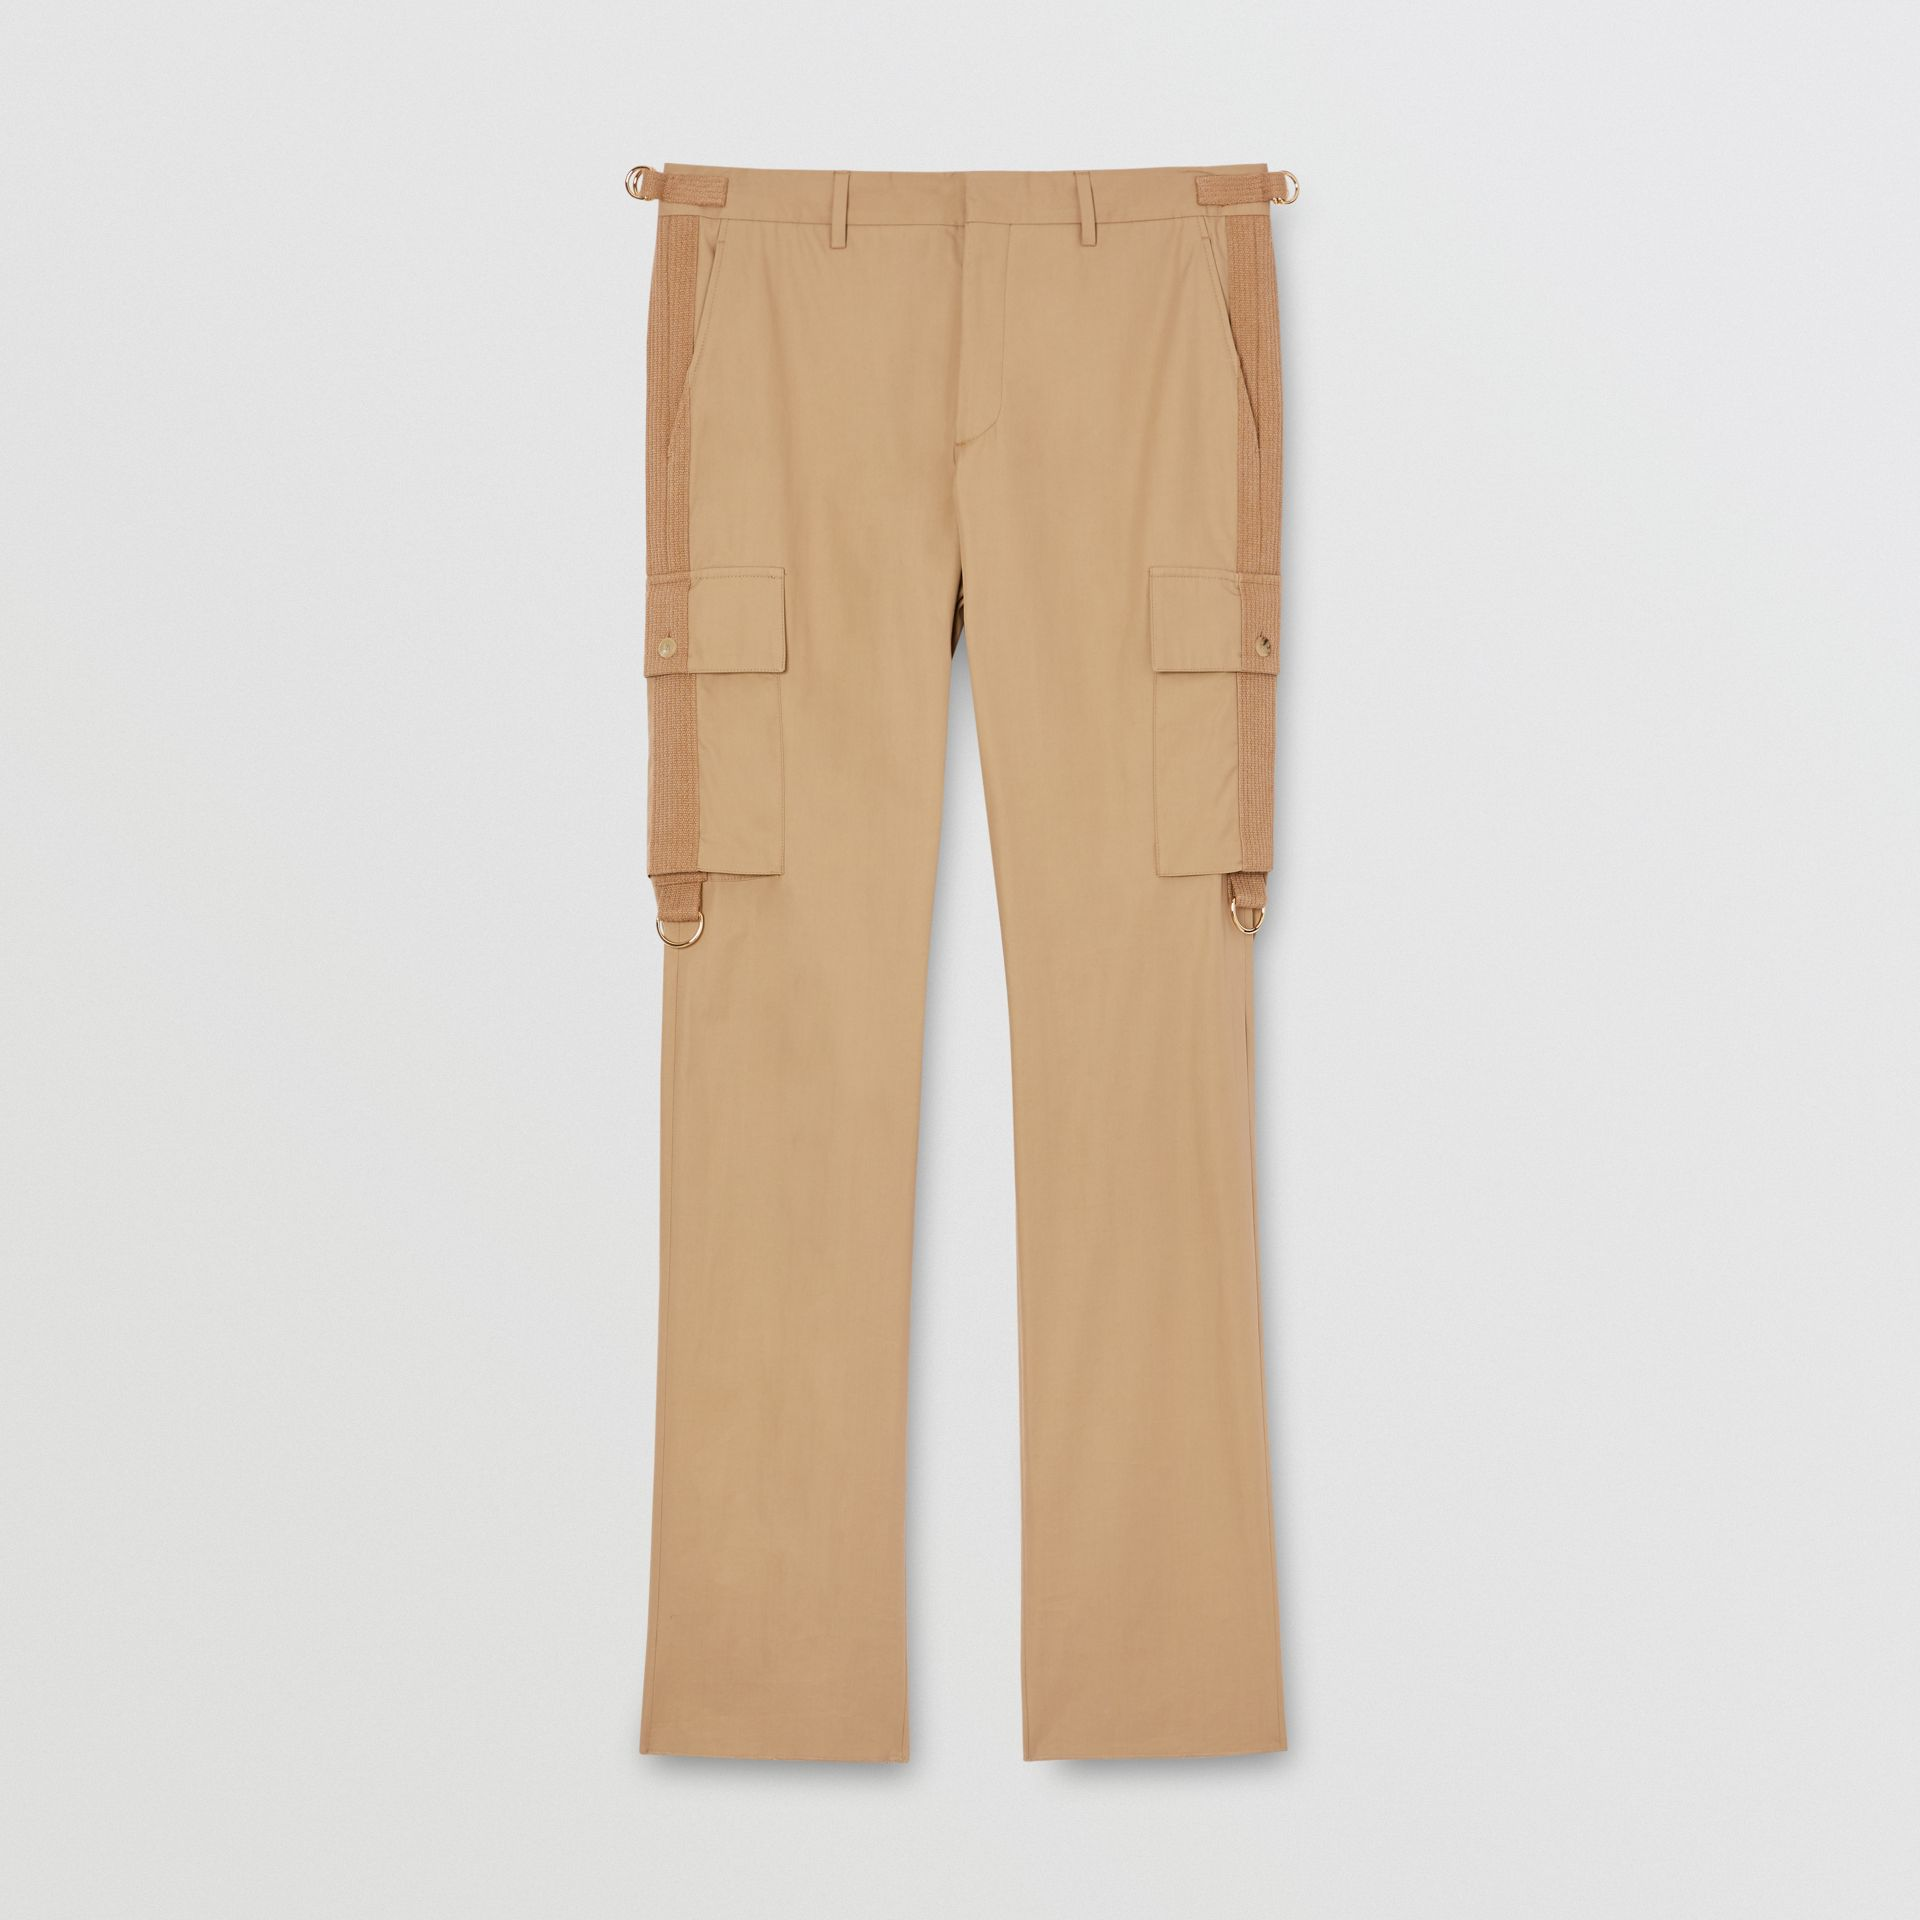 Cotton Twill Cargo Trousers in Pale Coffee - Men | Burberry - gallery image 3